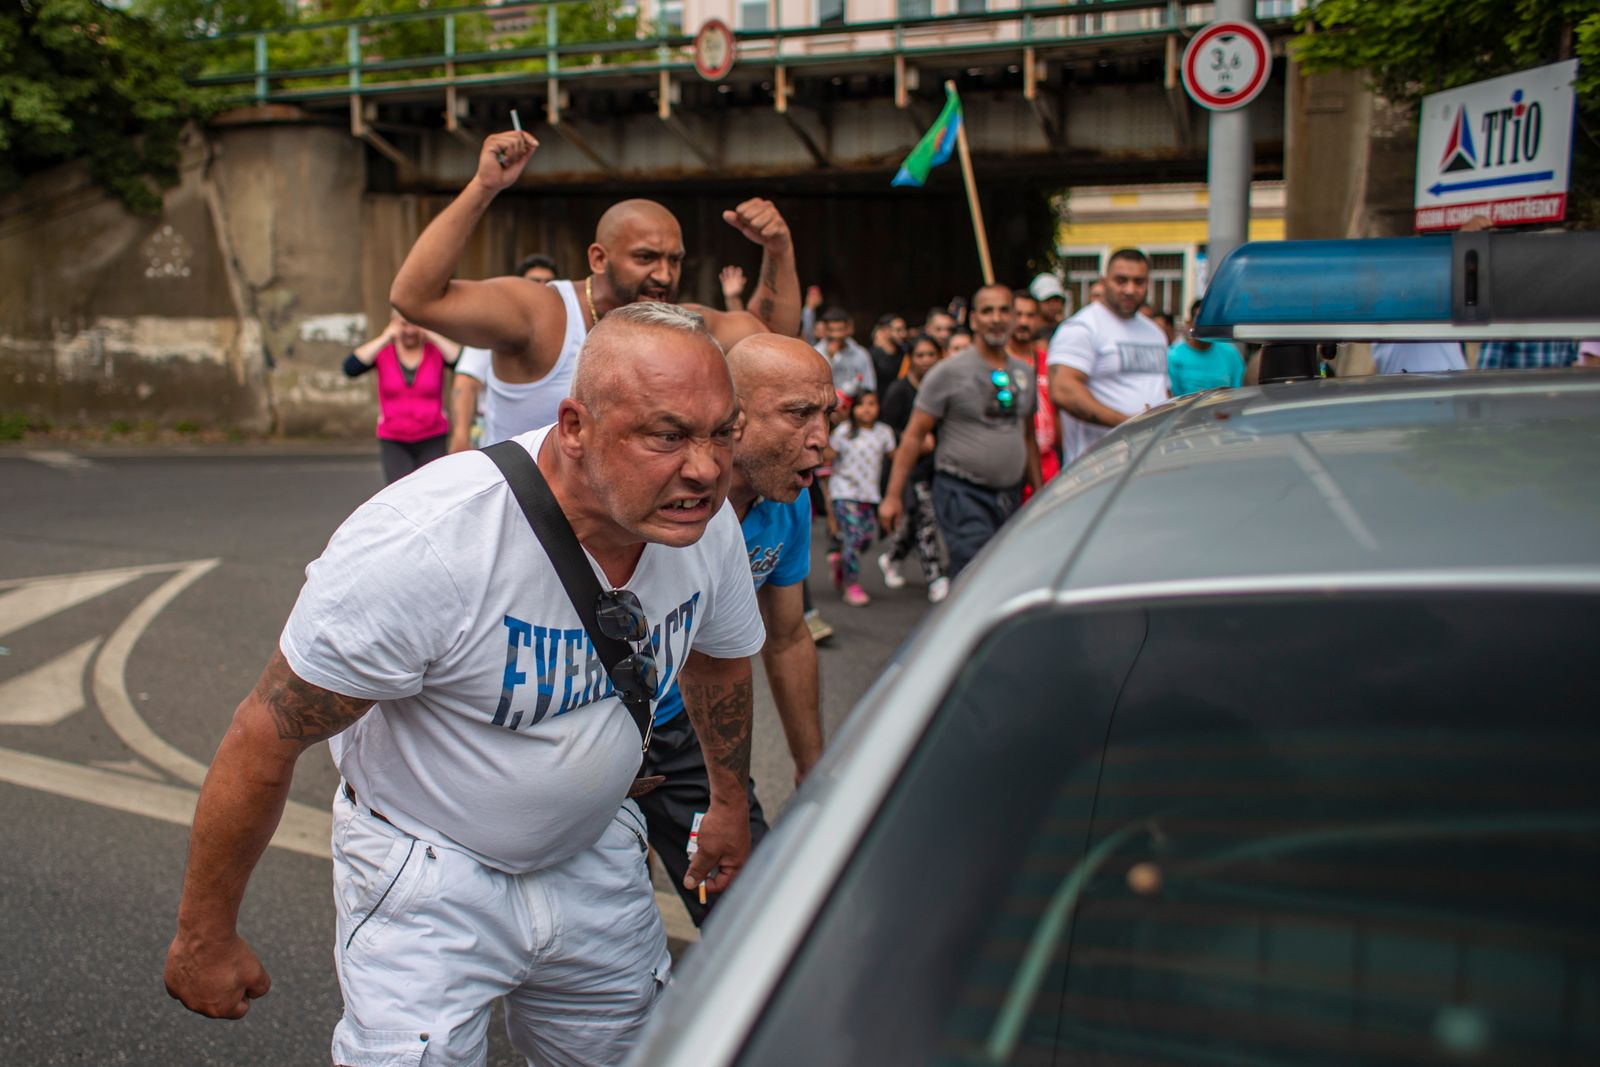 Protest against death of Roma man who died after police arrest in Czech Republic